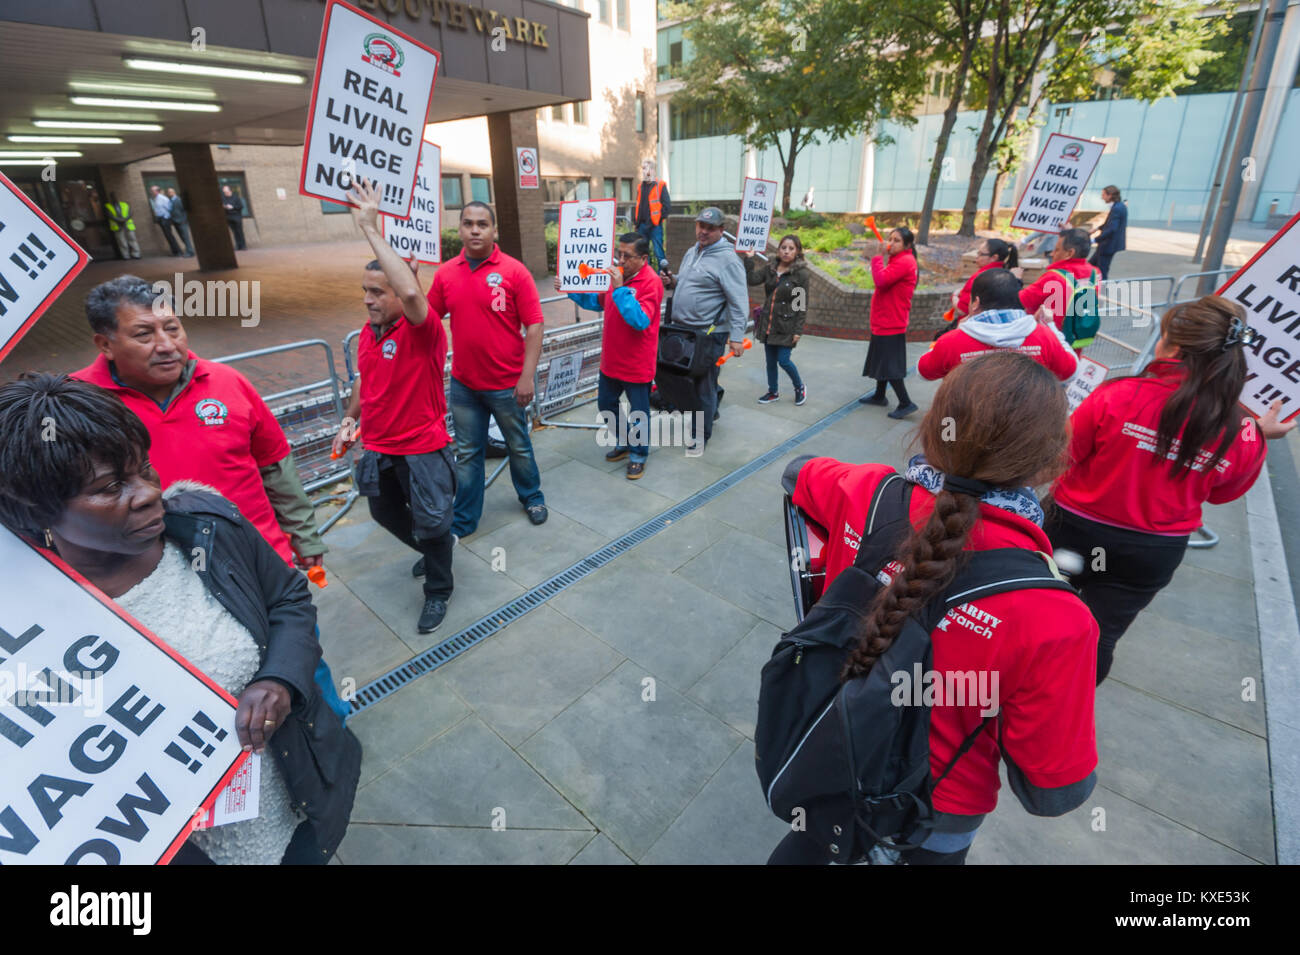 Protesters blow horns and carry posters in a circle at a noisy IWGB protest outside Southwark Crown Court demanding - Stock Image